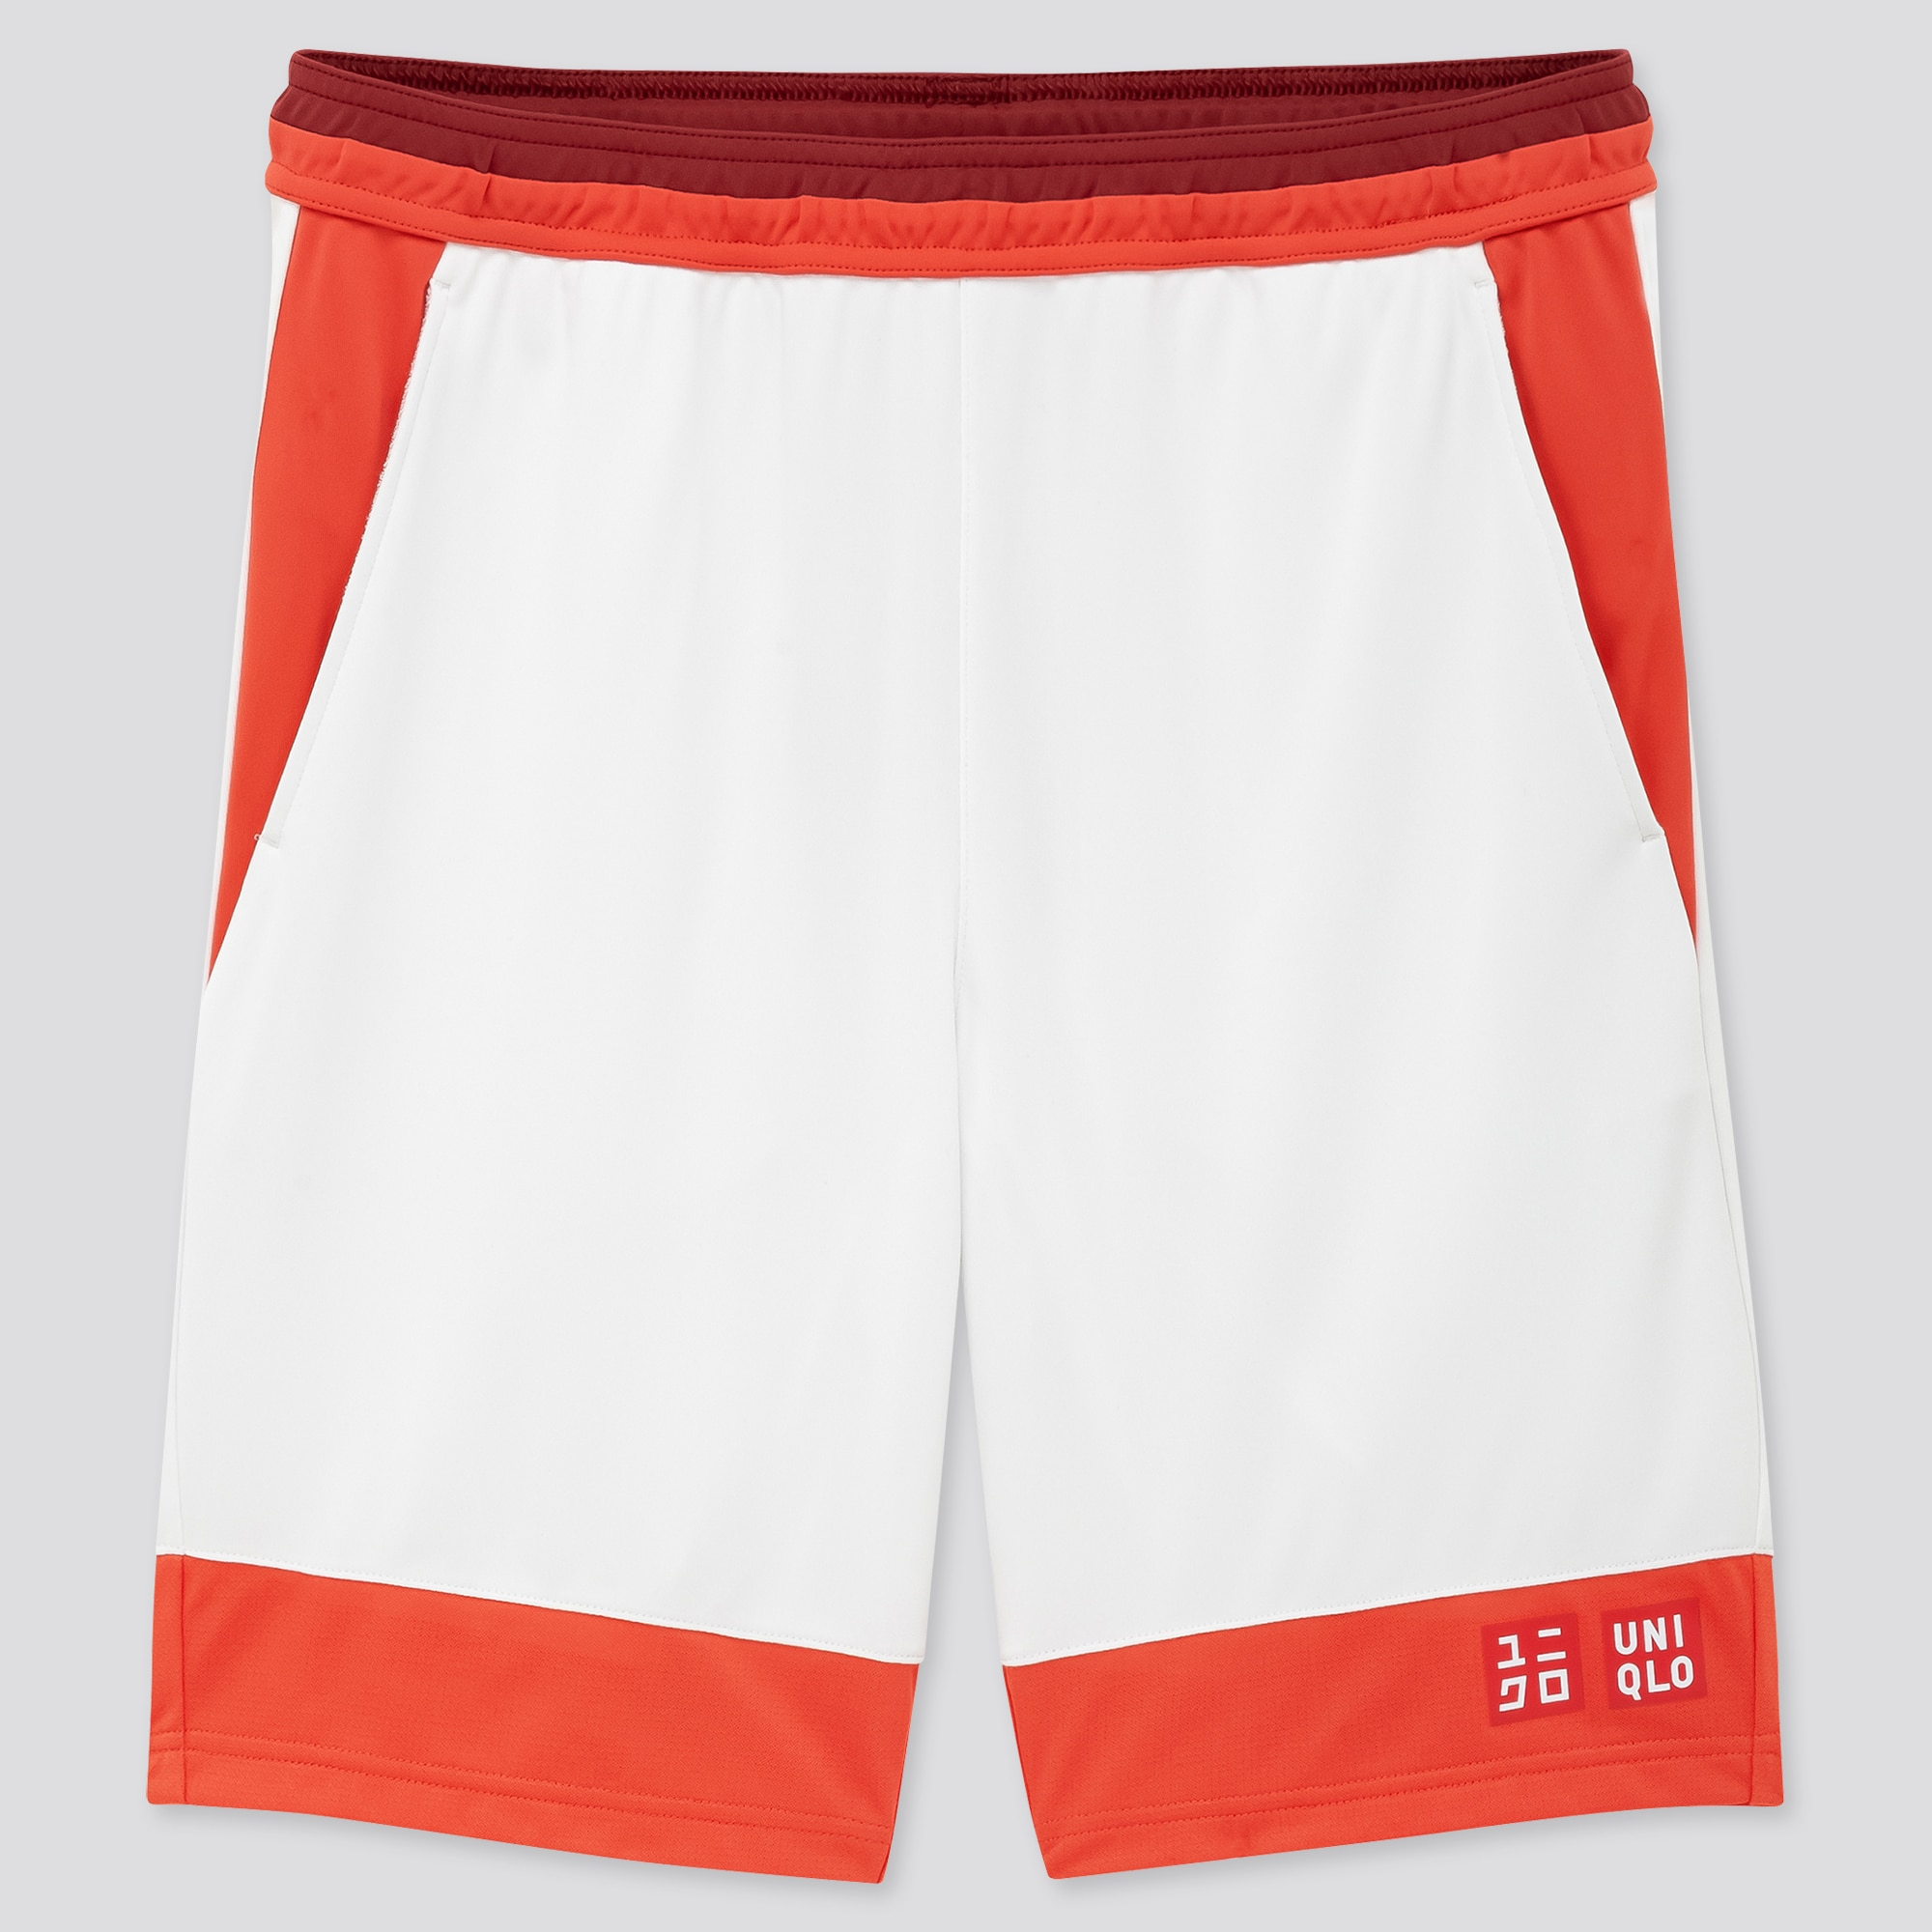 TO-JP Mens 3D Printing Beach Shorts Science Graphic Swim Trunks